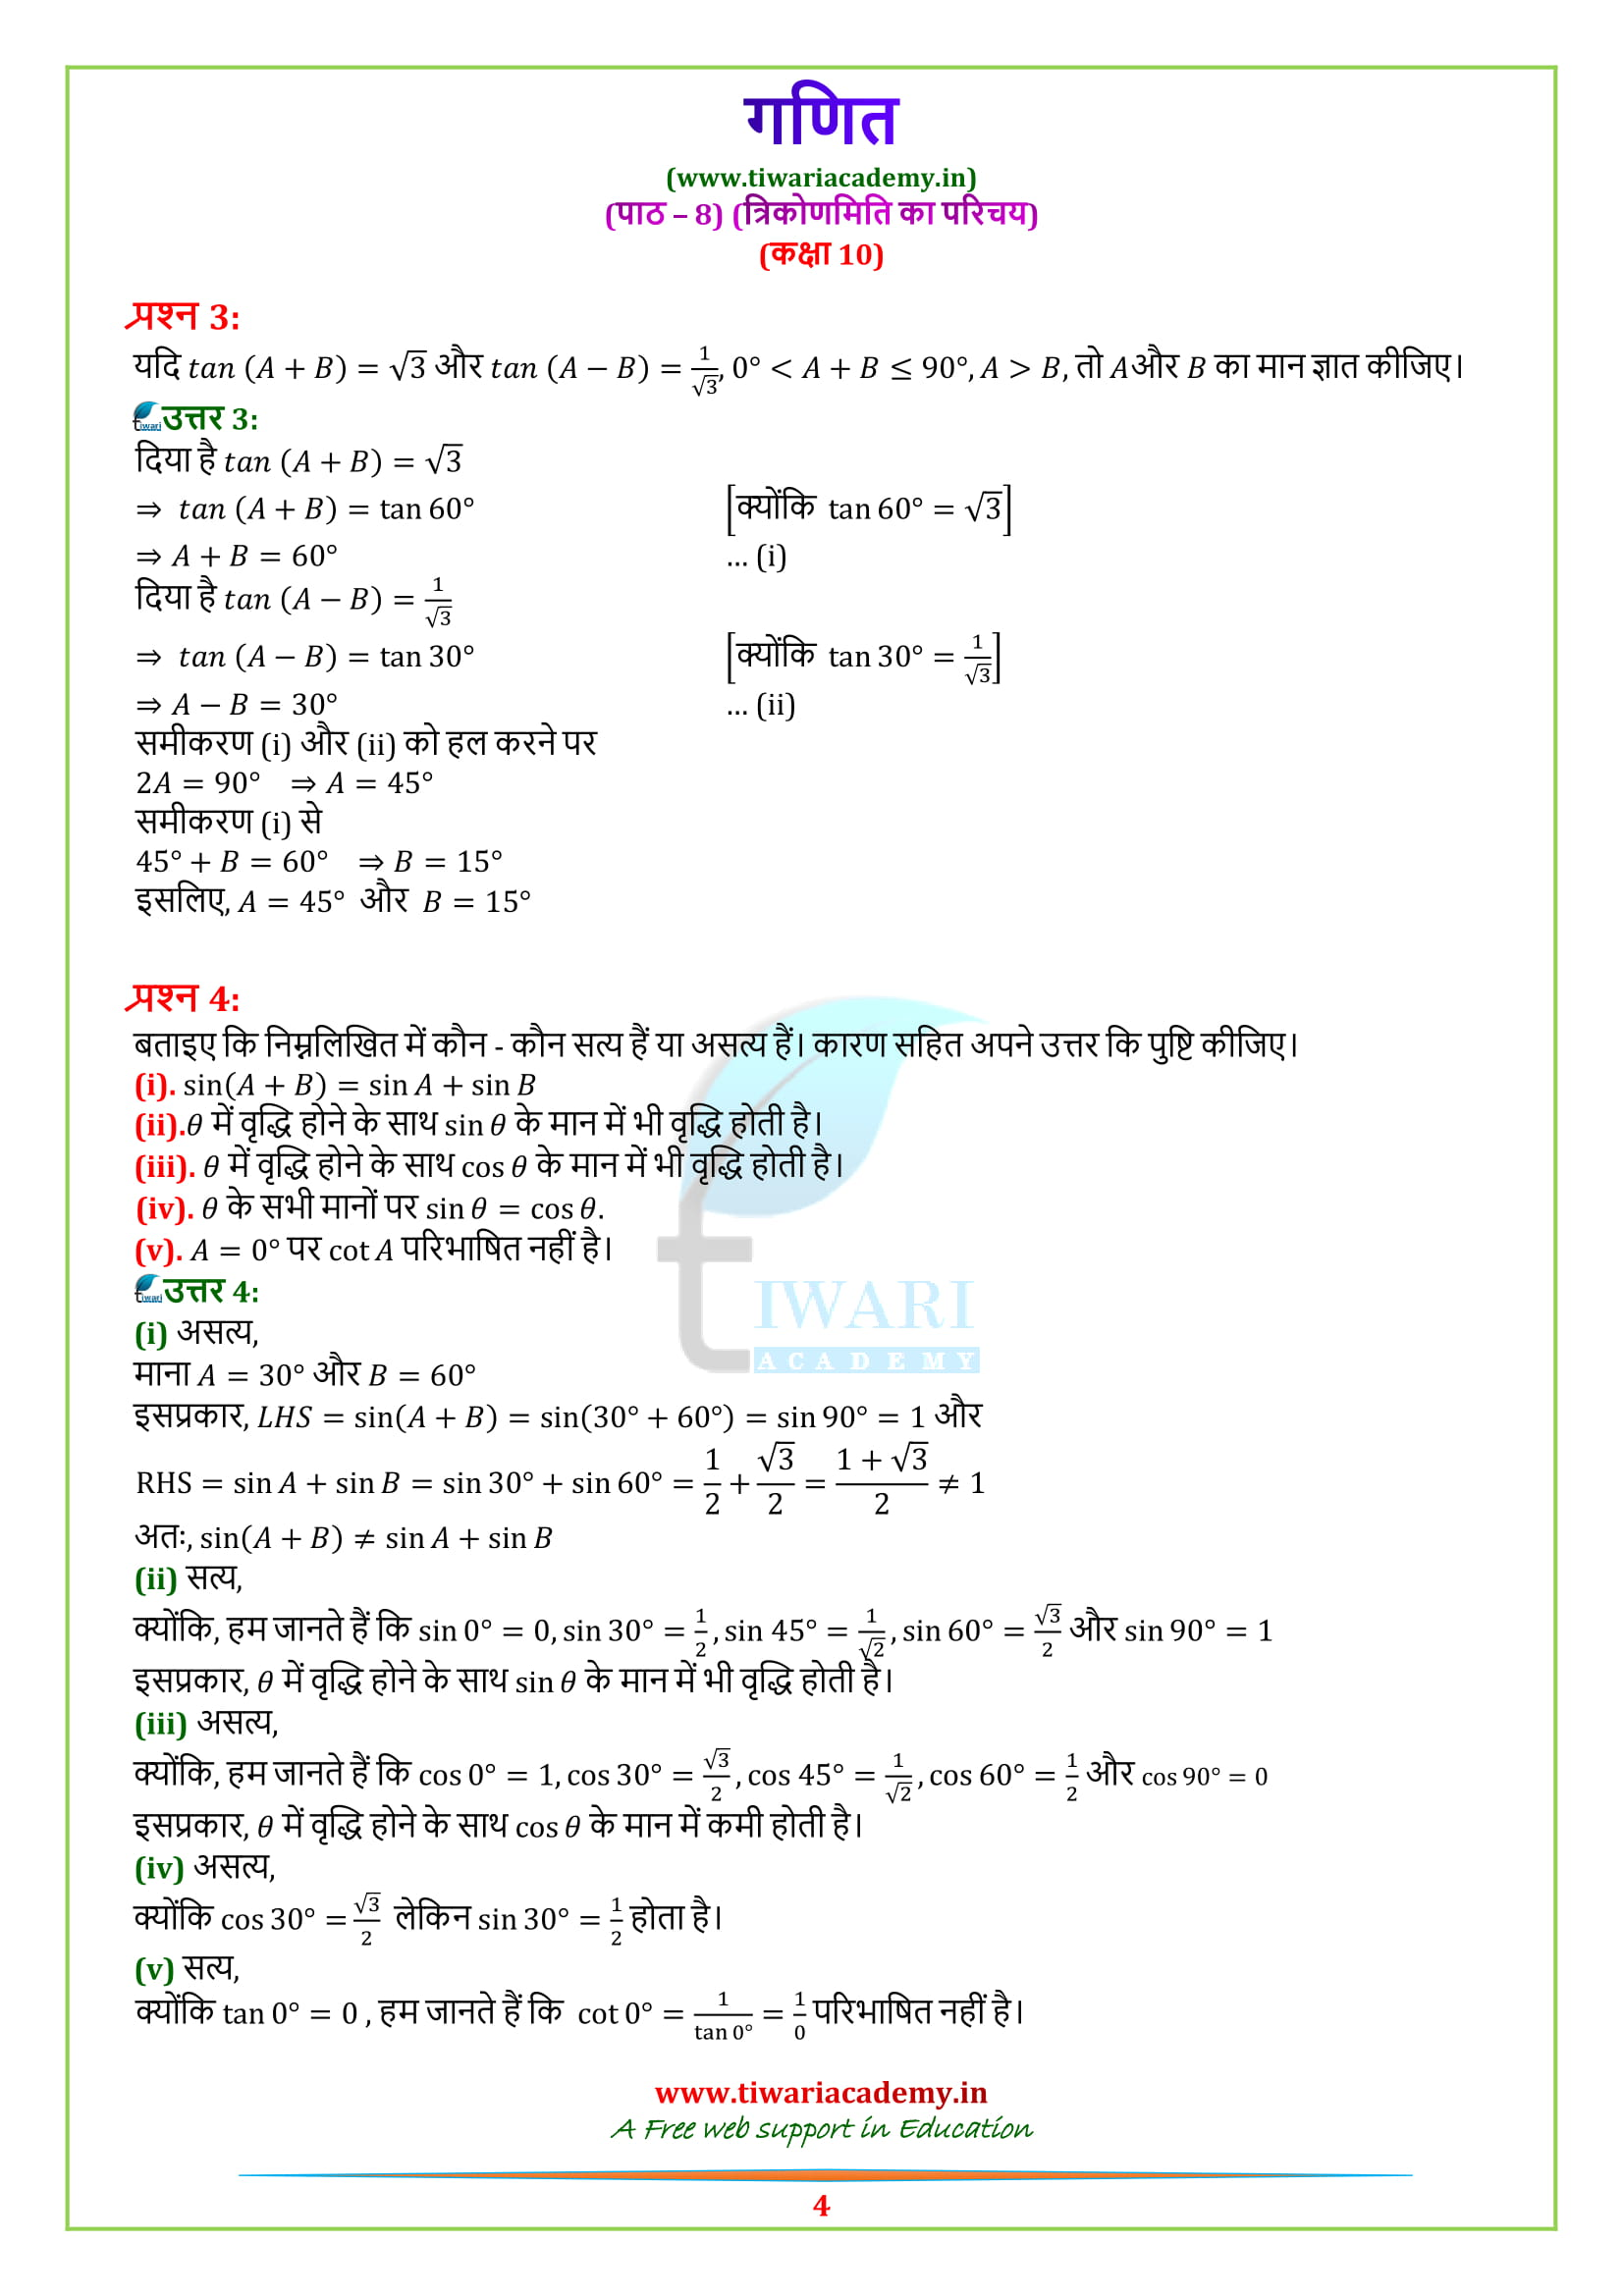 Class 10 Maths Exercise 8.2 solutions free for 2018-19 new syllabus